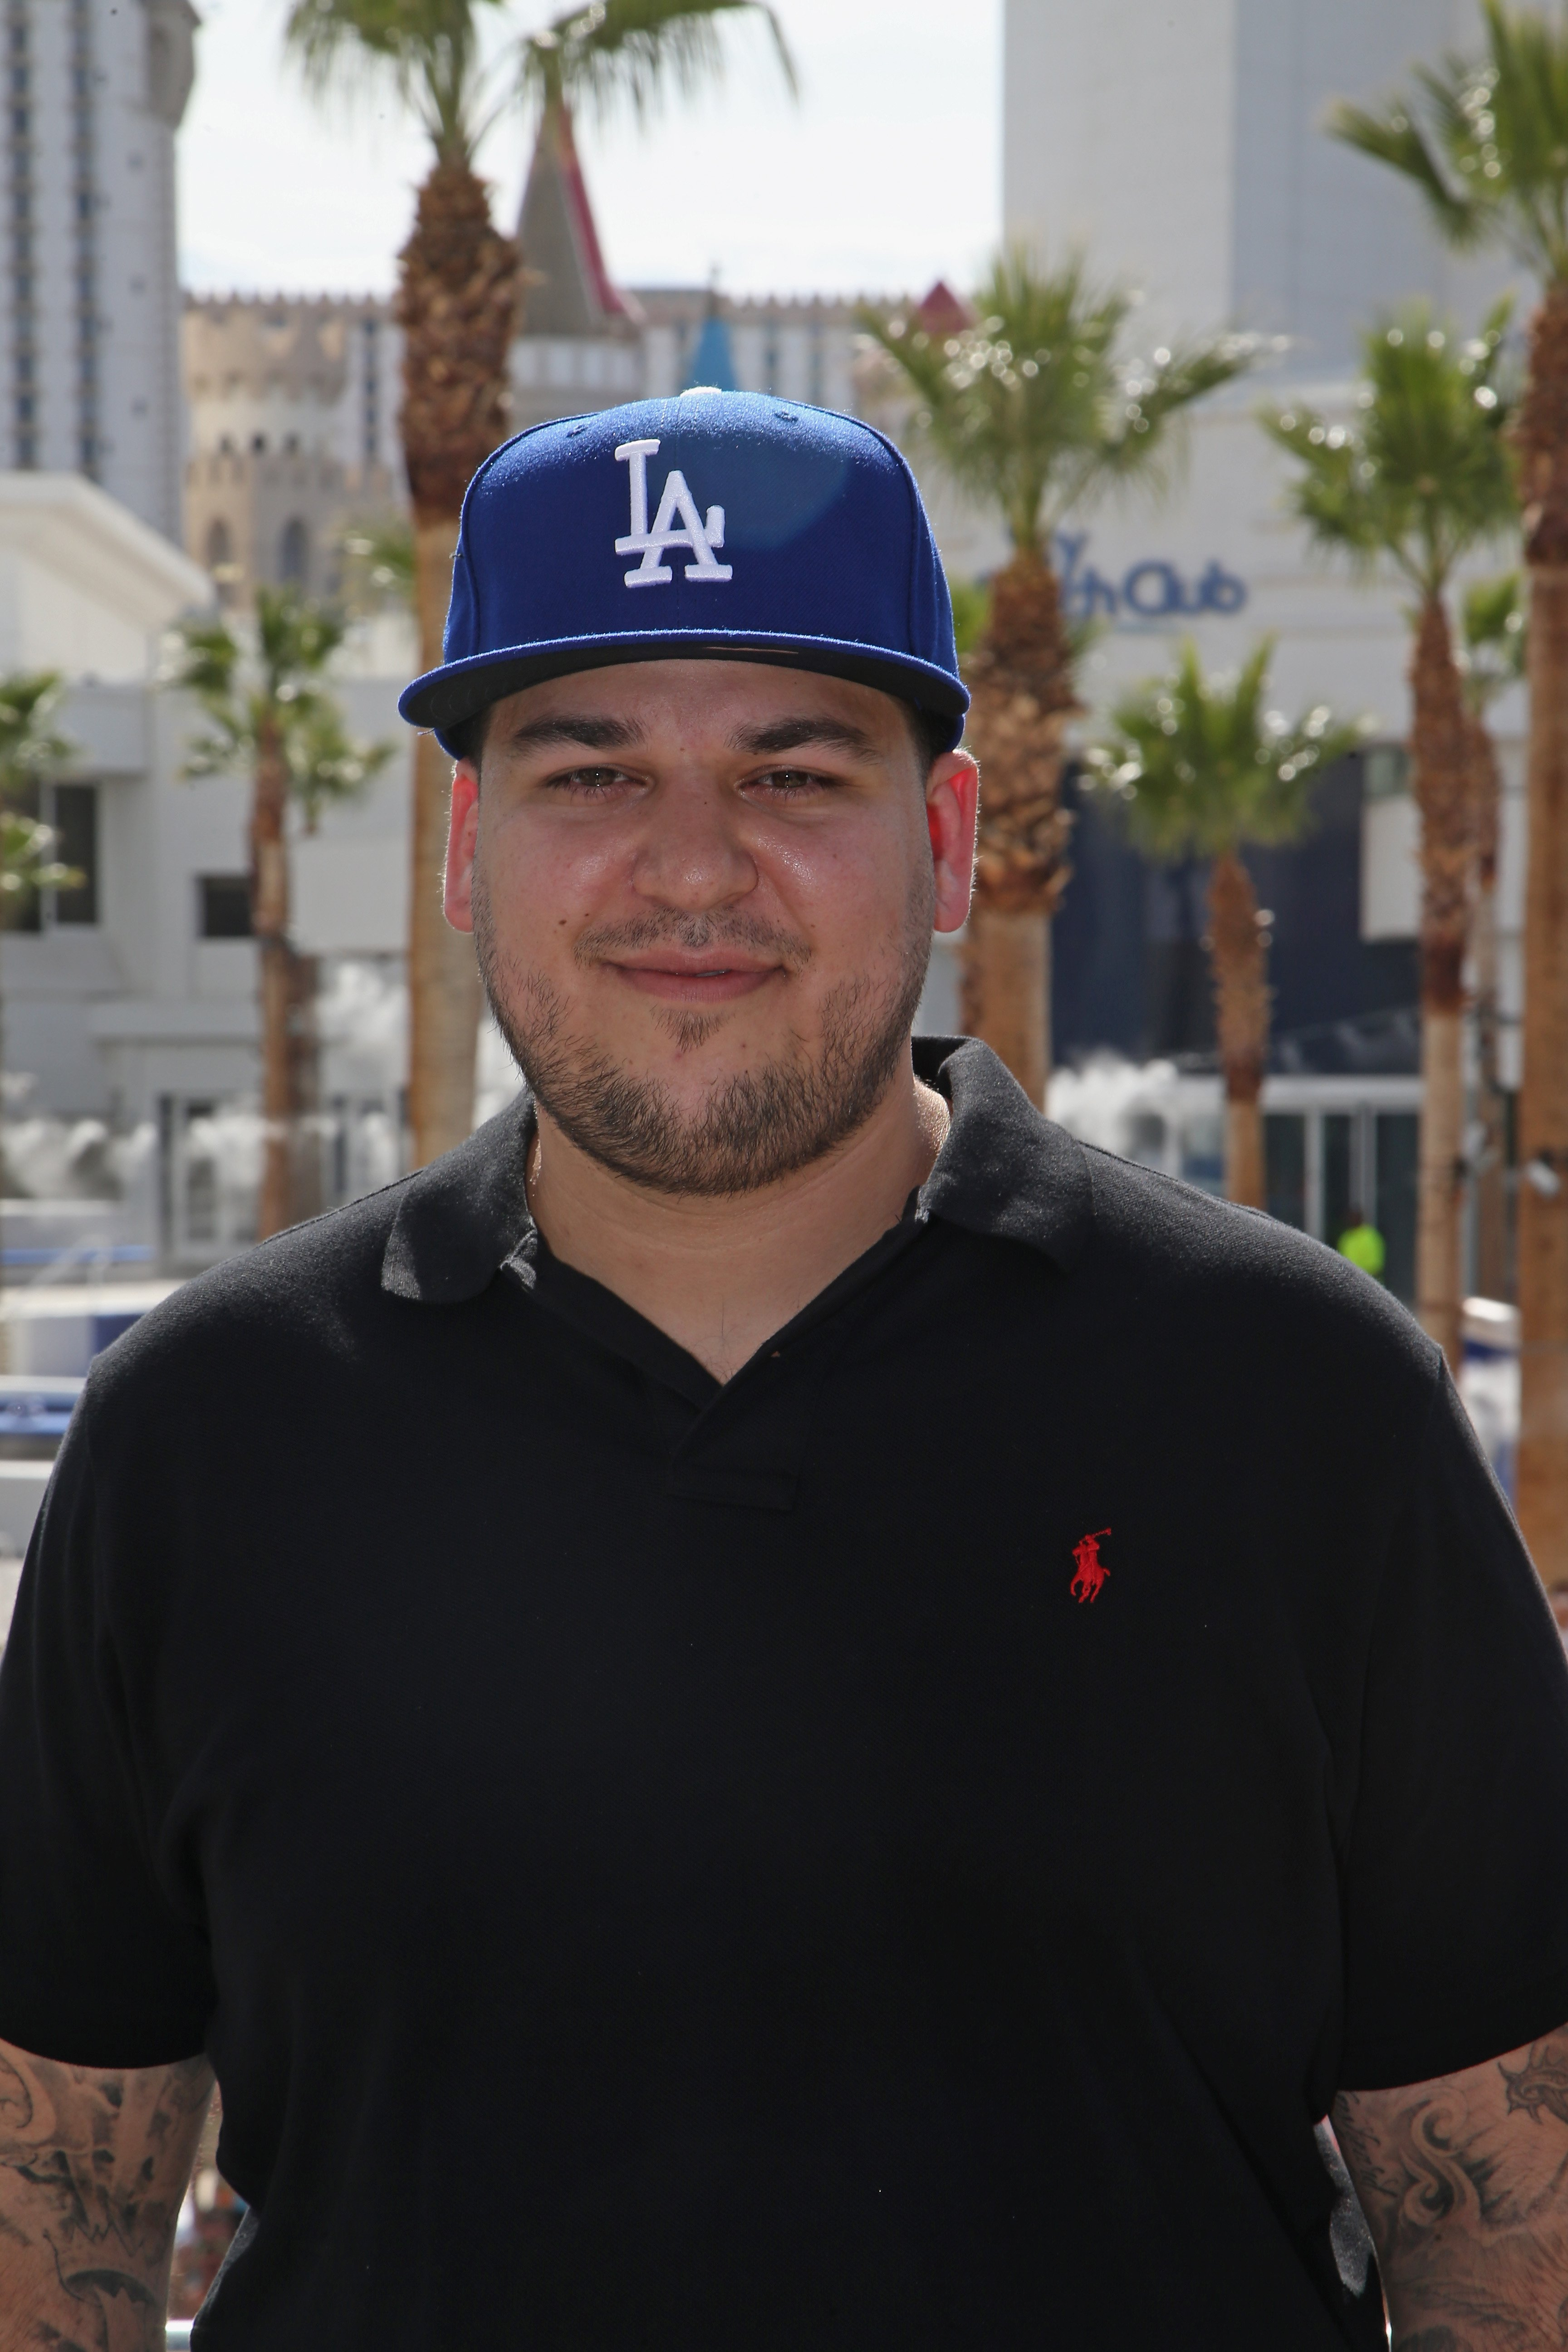 Rob Kardashian at the Sky Beach Club at the Tropicana Las Vegas in May 2016. | Photo: Getty Images